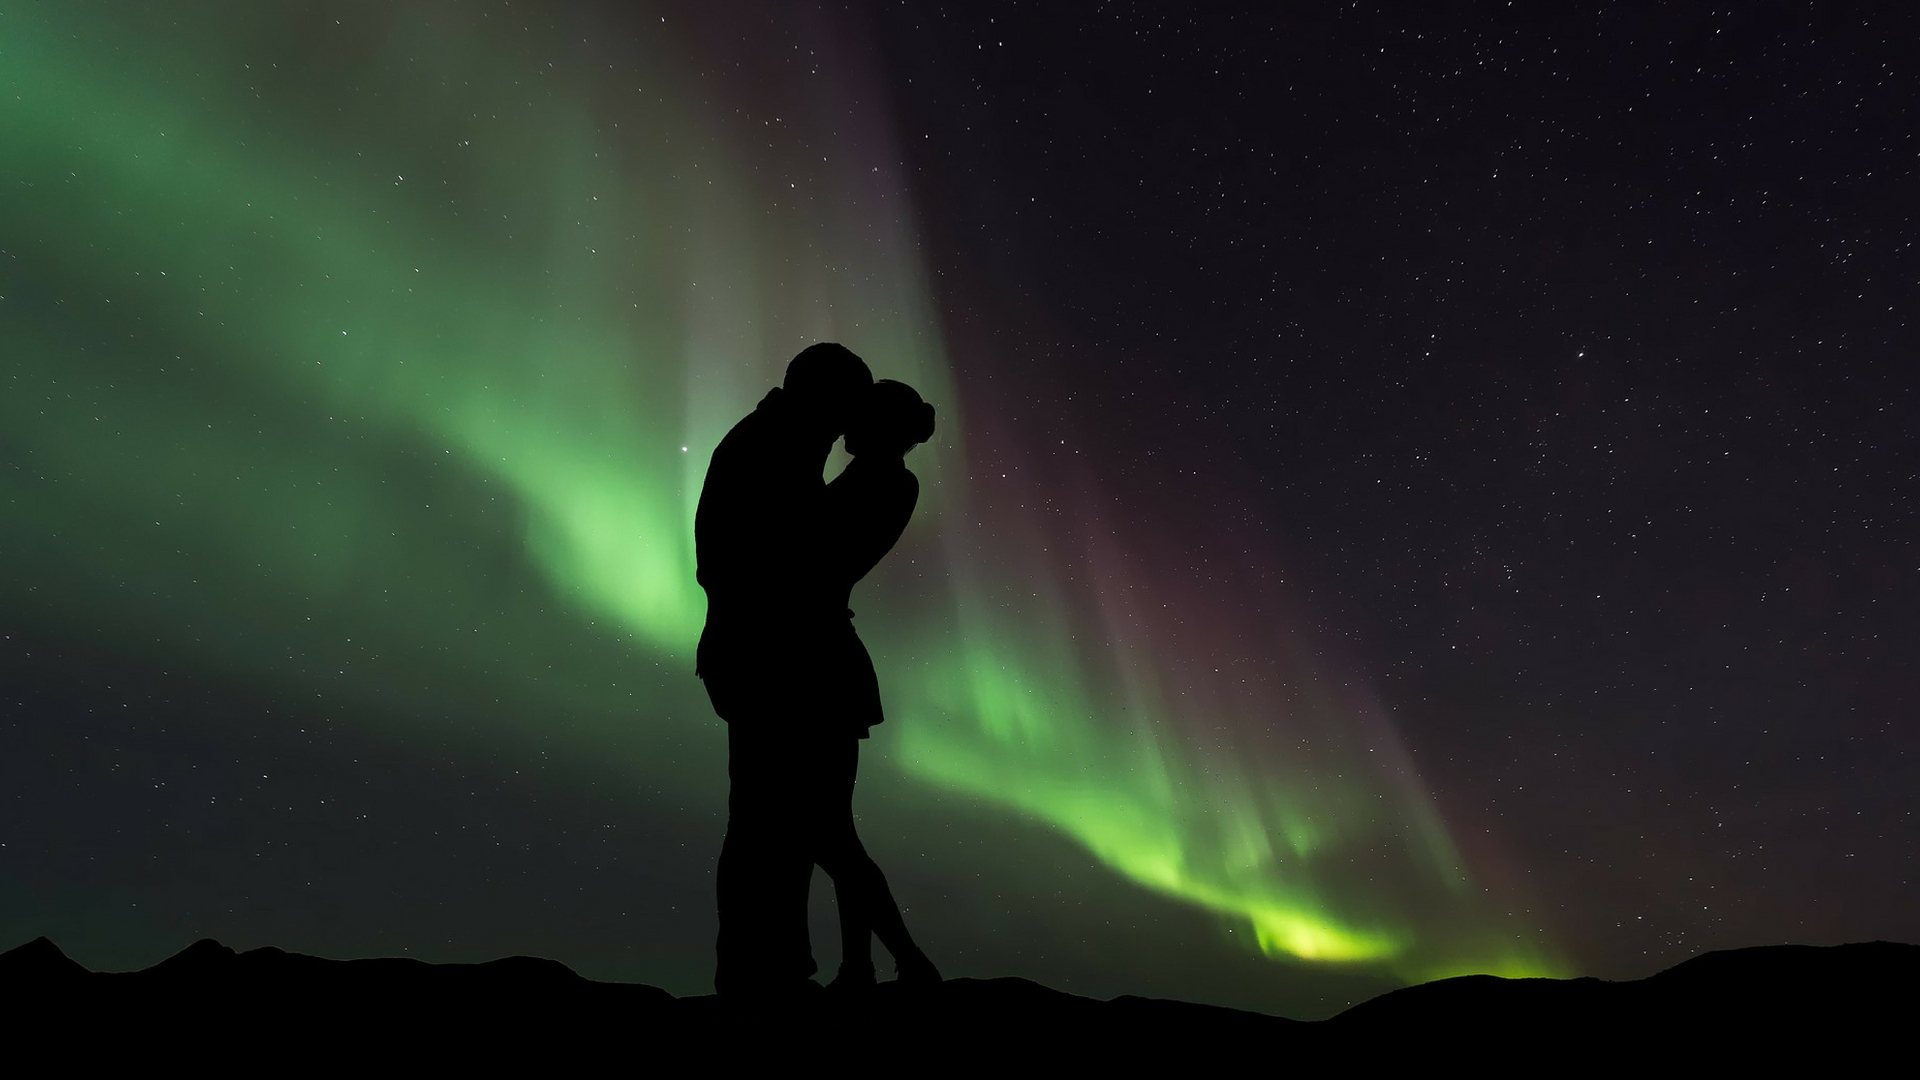 The Northern Lights: Top photography tips